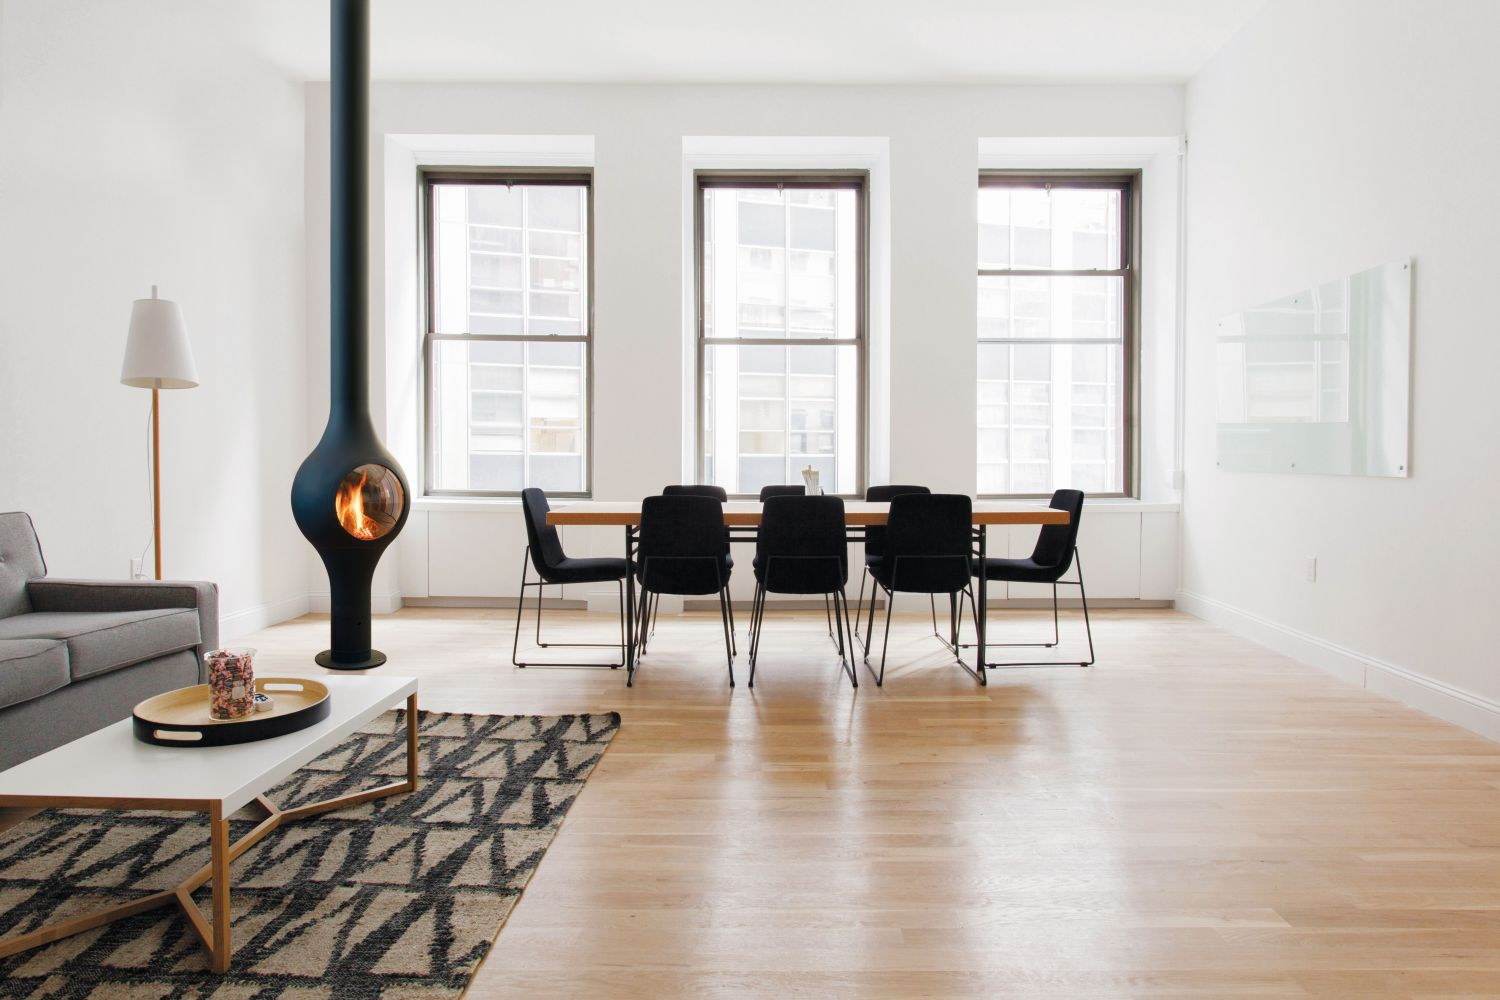 Floating Wood Stove Installation Wall Fireplace Manufacturers, Floating Wood Stove Installation Wall Fireplace Quotes, Floating Wood Stove Installation Wall Fireplace Suppliers